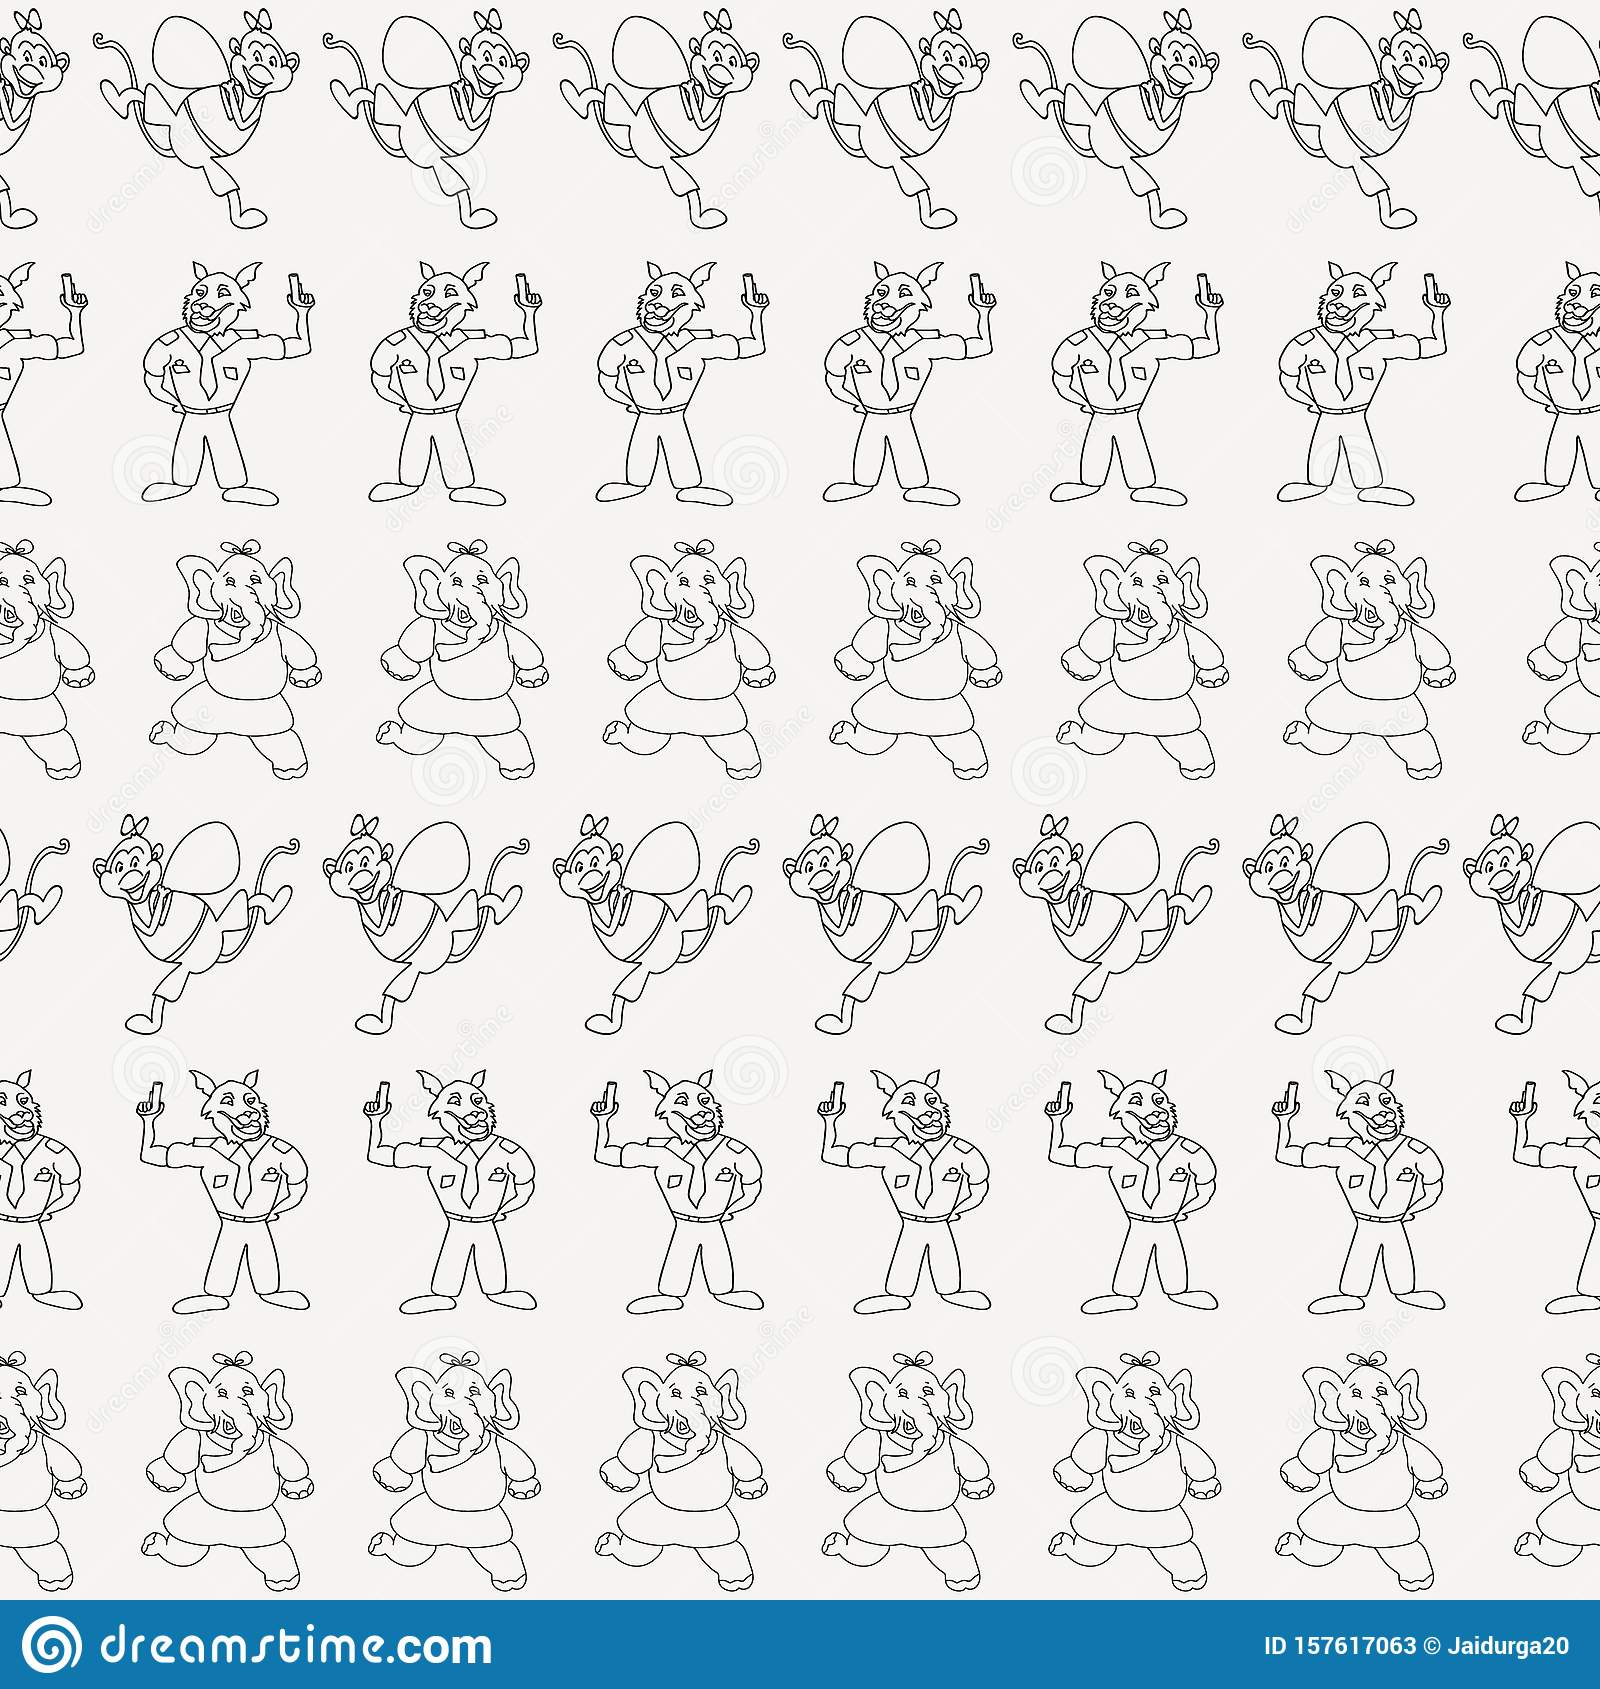 Vector black and white horizontal anthropomorphic cartoon characters seamless pattern background